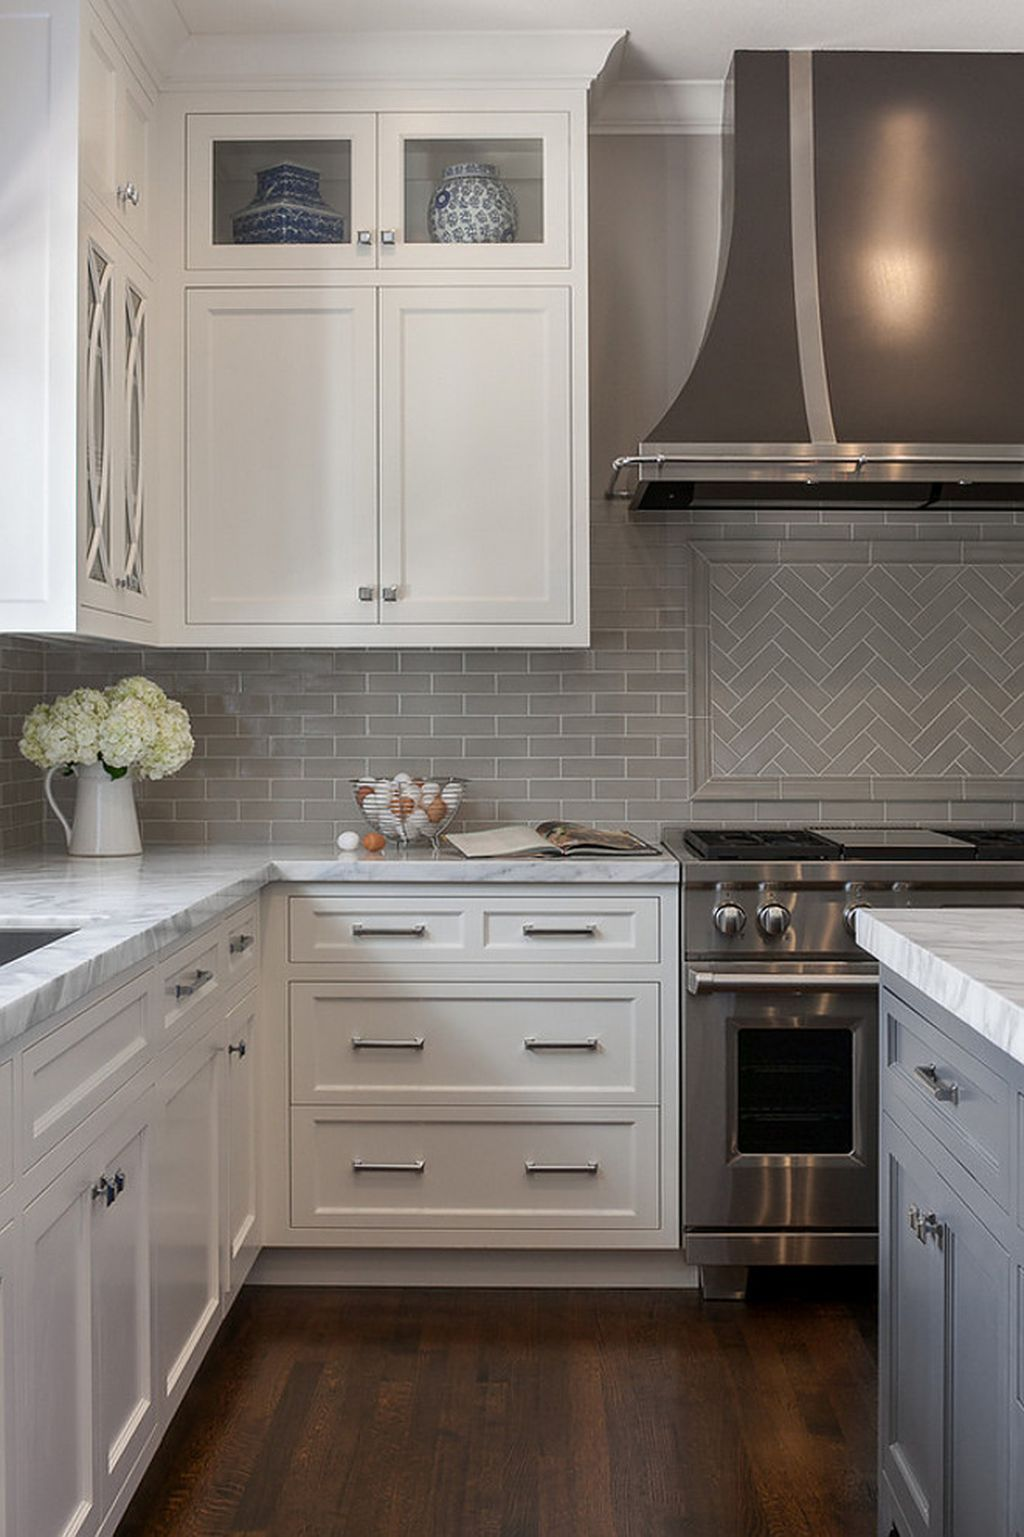 ideas for a kitchen backsplash kitchen backsplash ideas